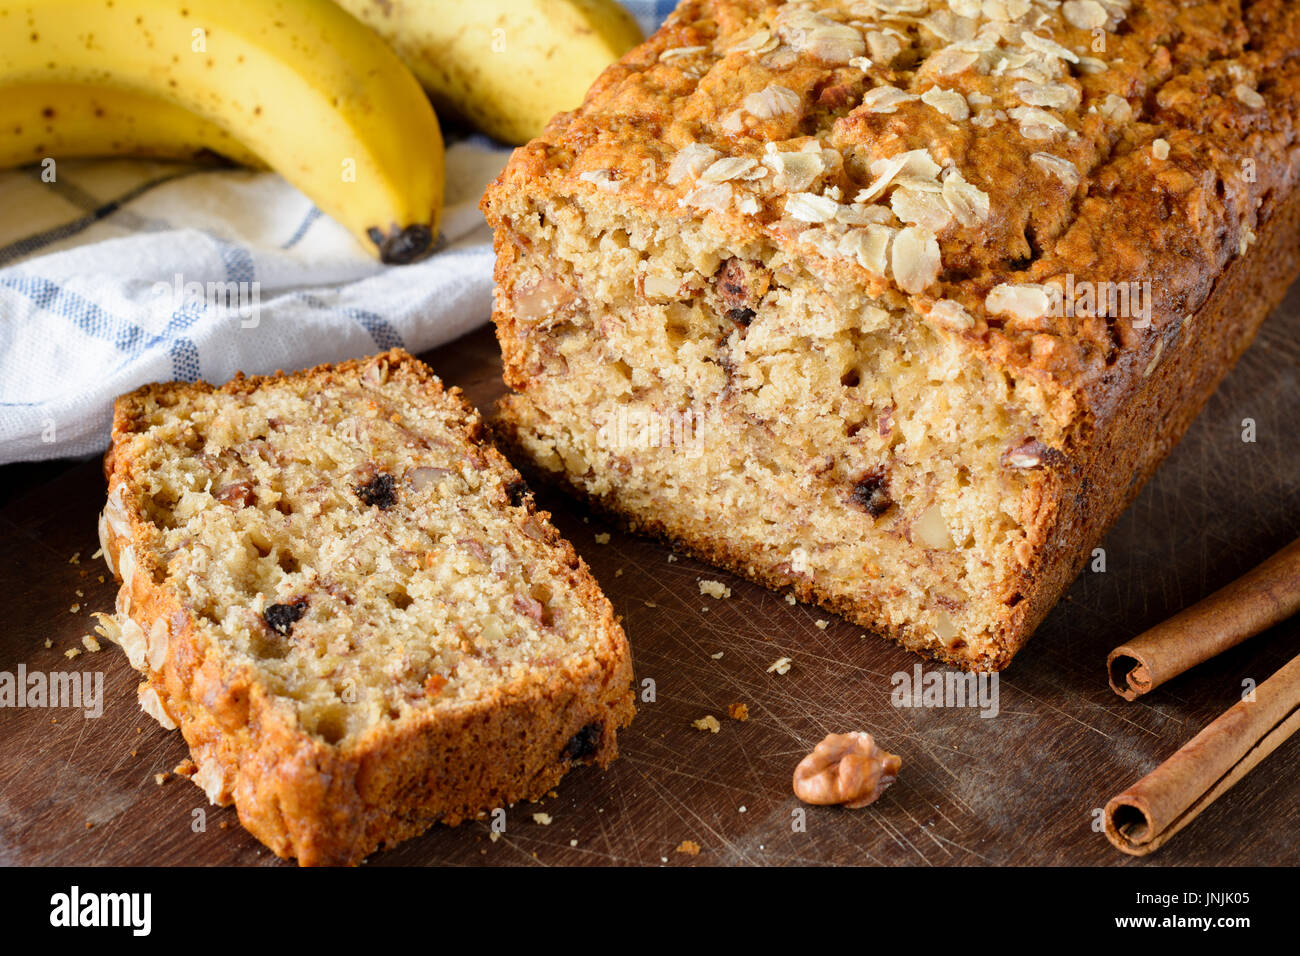 Protein banana bread loaf with walnuts and cinnamon on wooden board. Closeup view - Stock Image